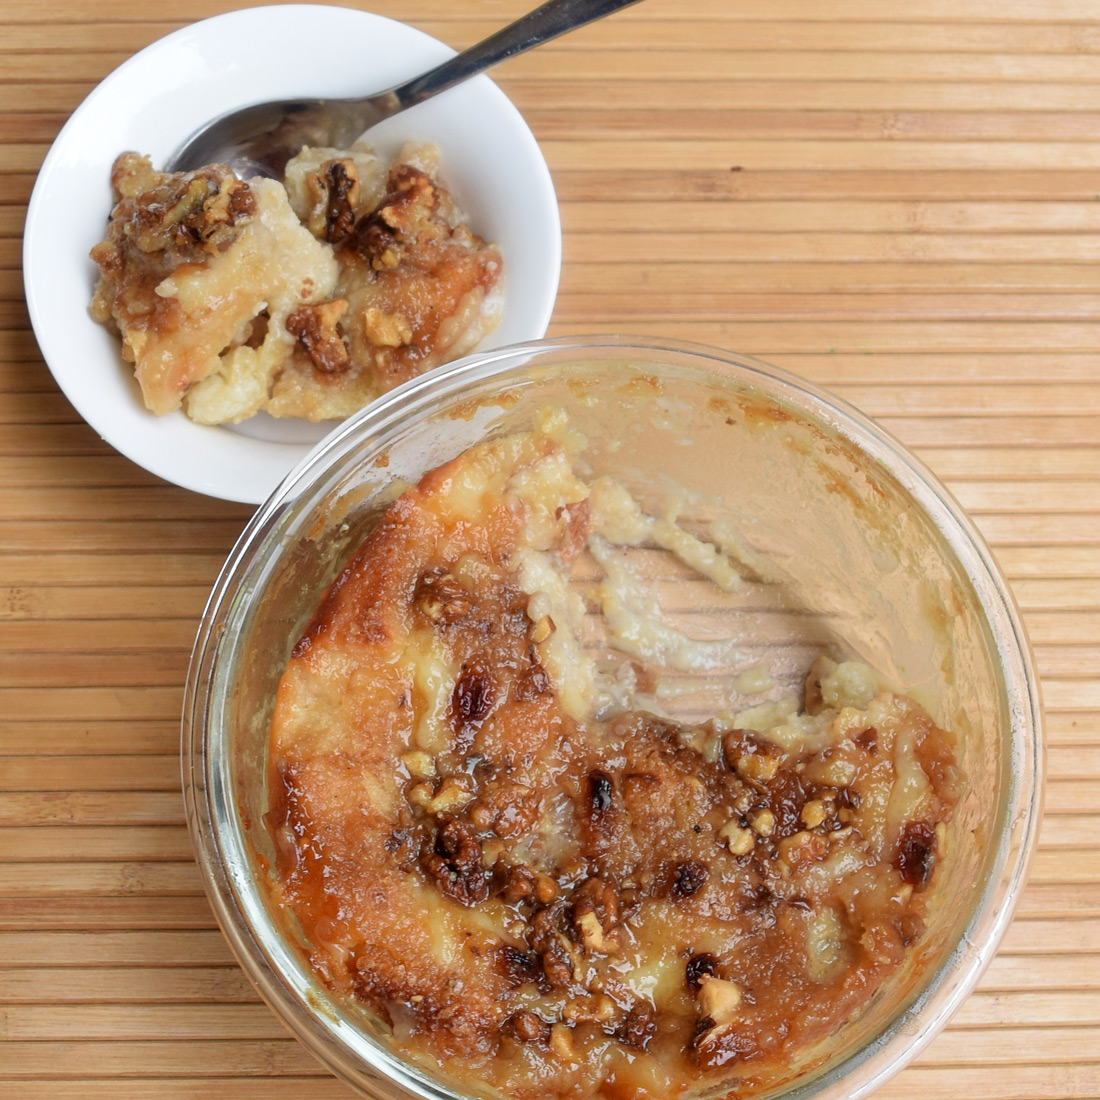 Egg-less Bread Pudding